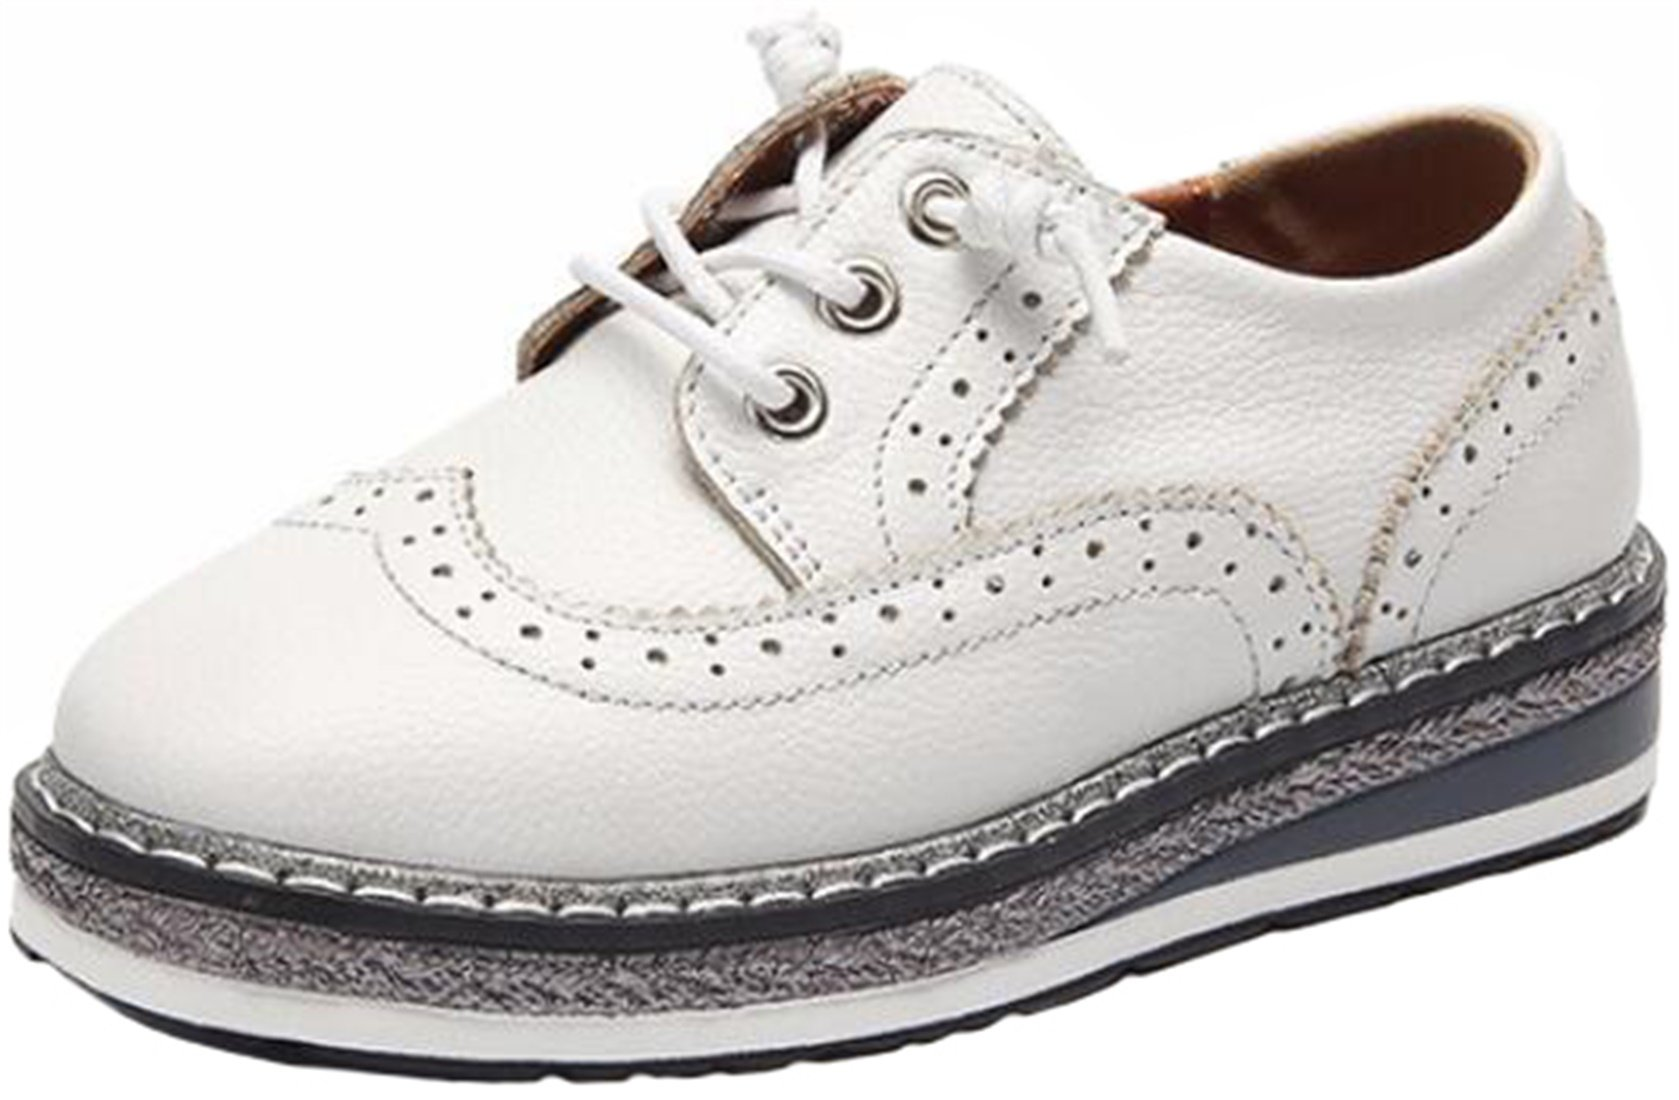 PPXID Boy's Girl's Preppy Style Lace up Leather Platform Brogue Carving Oxford Shoes-White 4.5 US Size